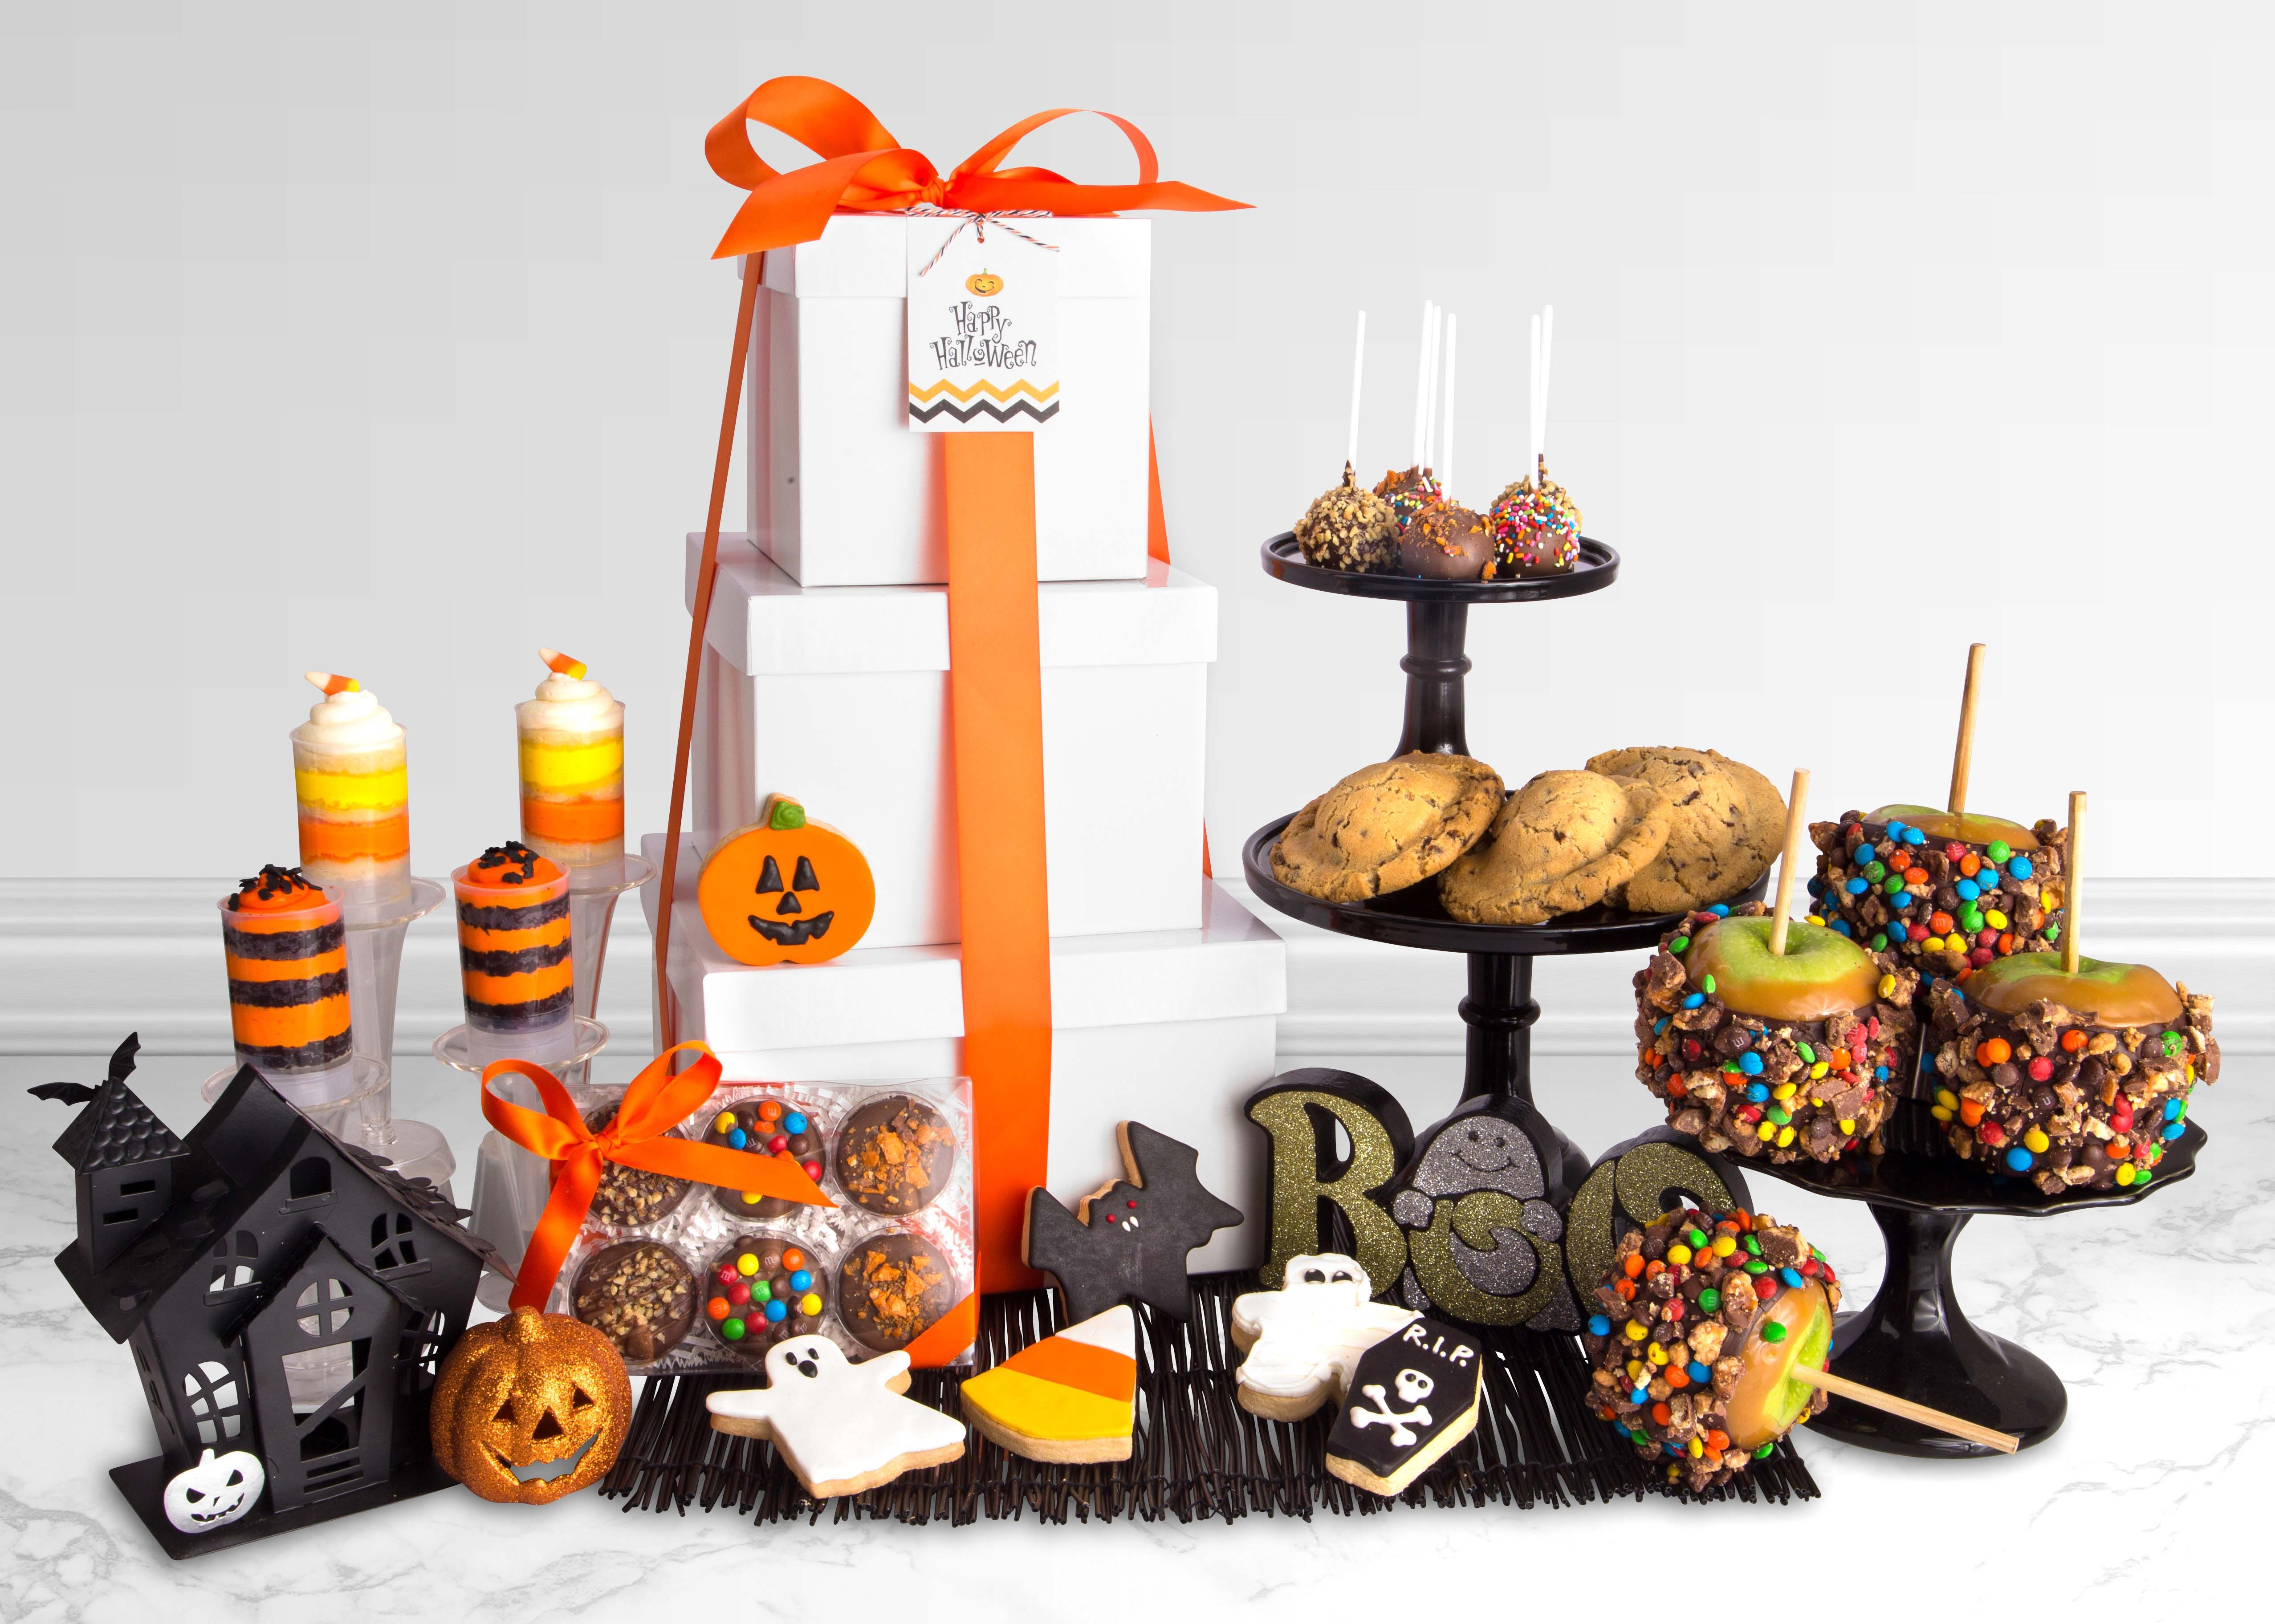 Ultimate Halloween Gift Tower (Candy Cake Pops, Stuffed